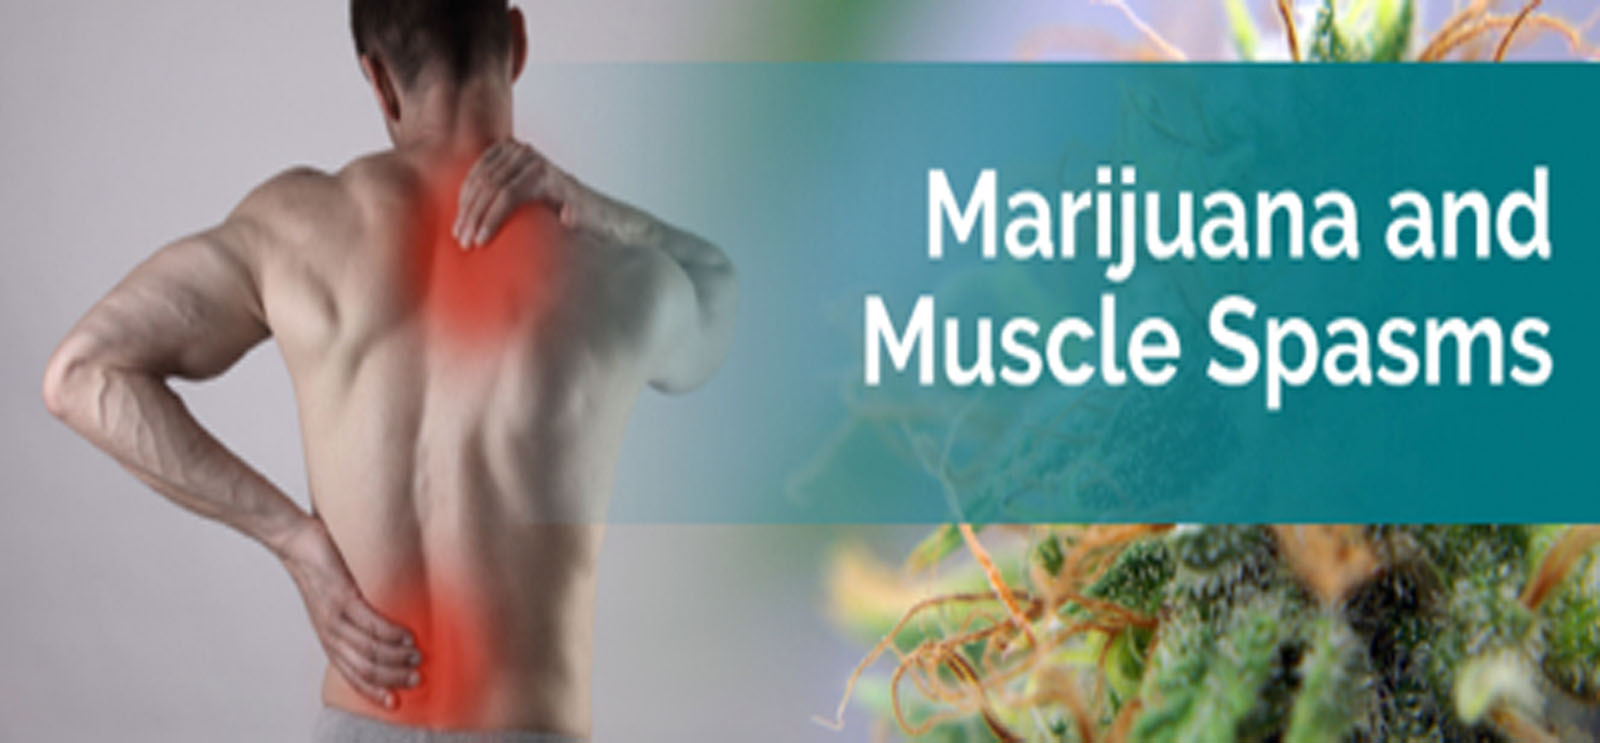 Medical Marijuana Muscle Spasms